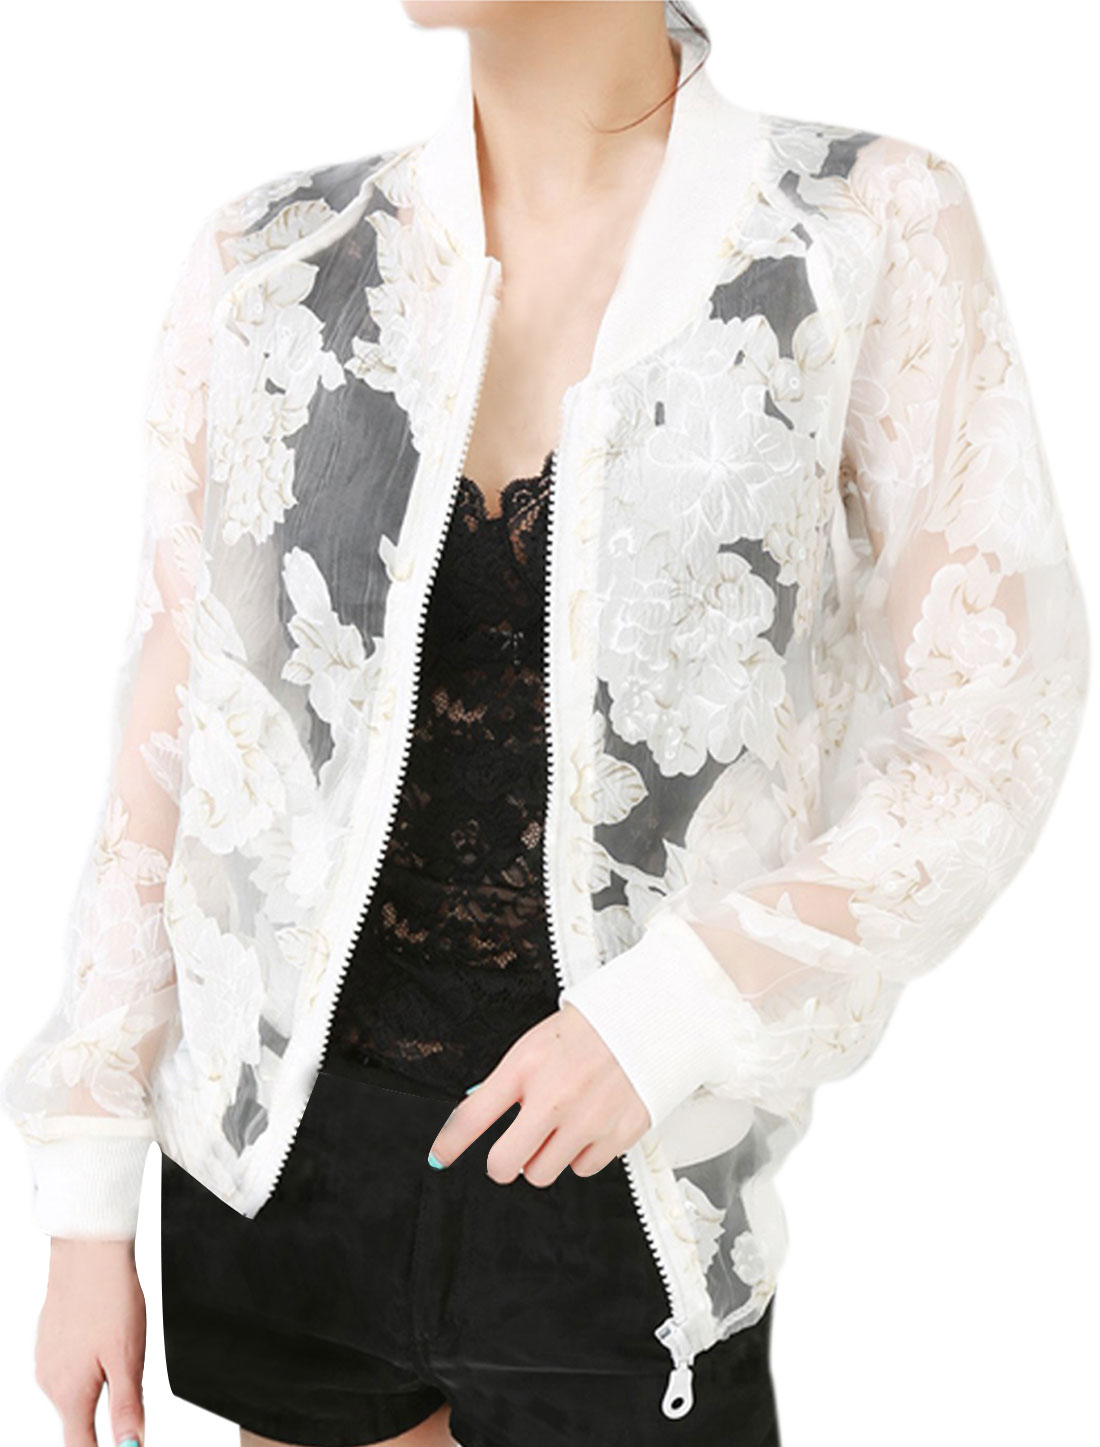 Women's Fashion Stand Collar Flower Printed Semi-sheer White S Thin Jacket